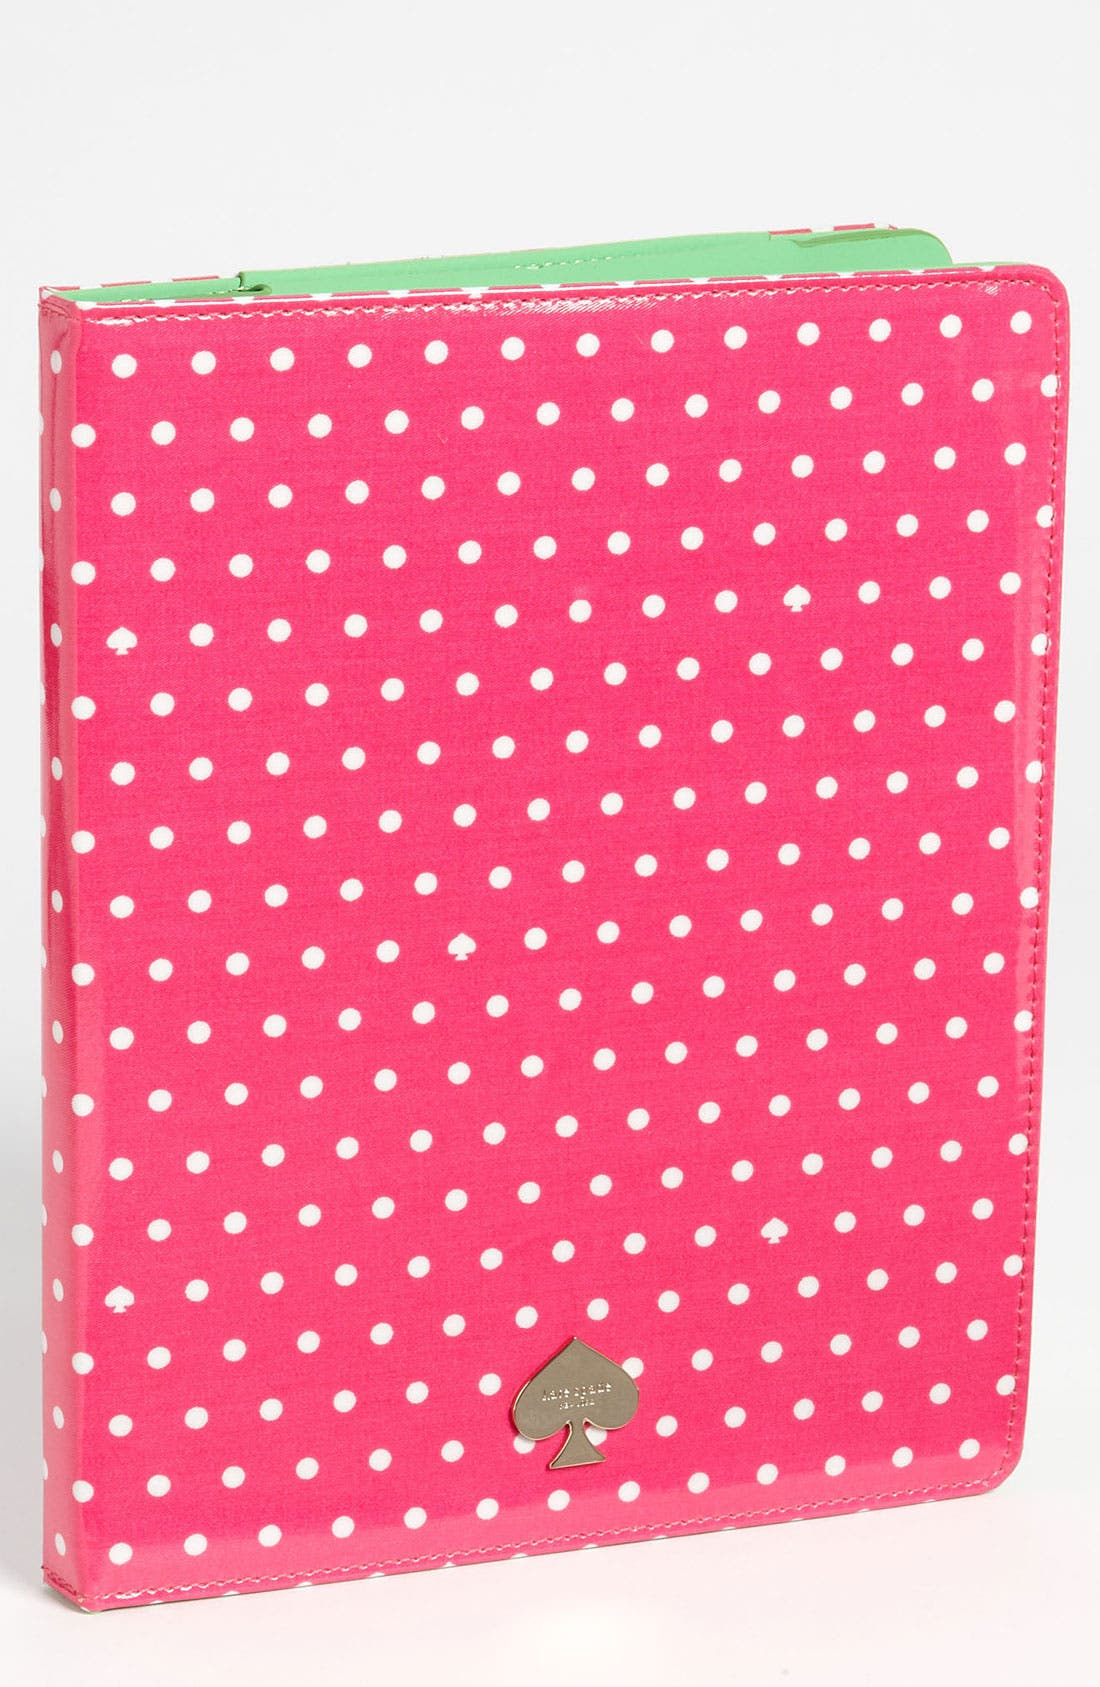 Alternate Image 1 Selected - kate spade new york 'dots and spades' iPad folio